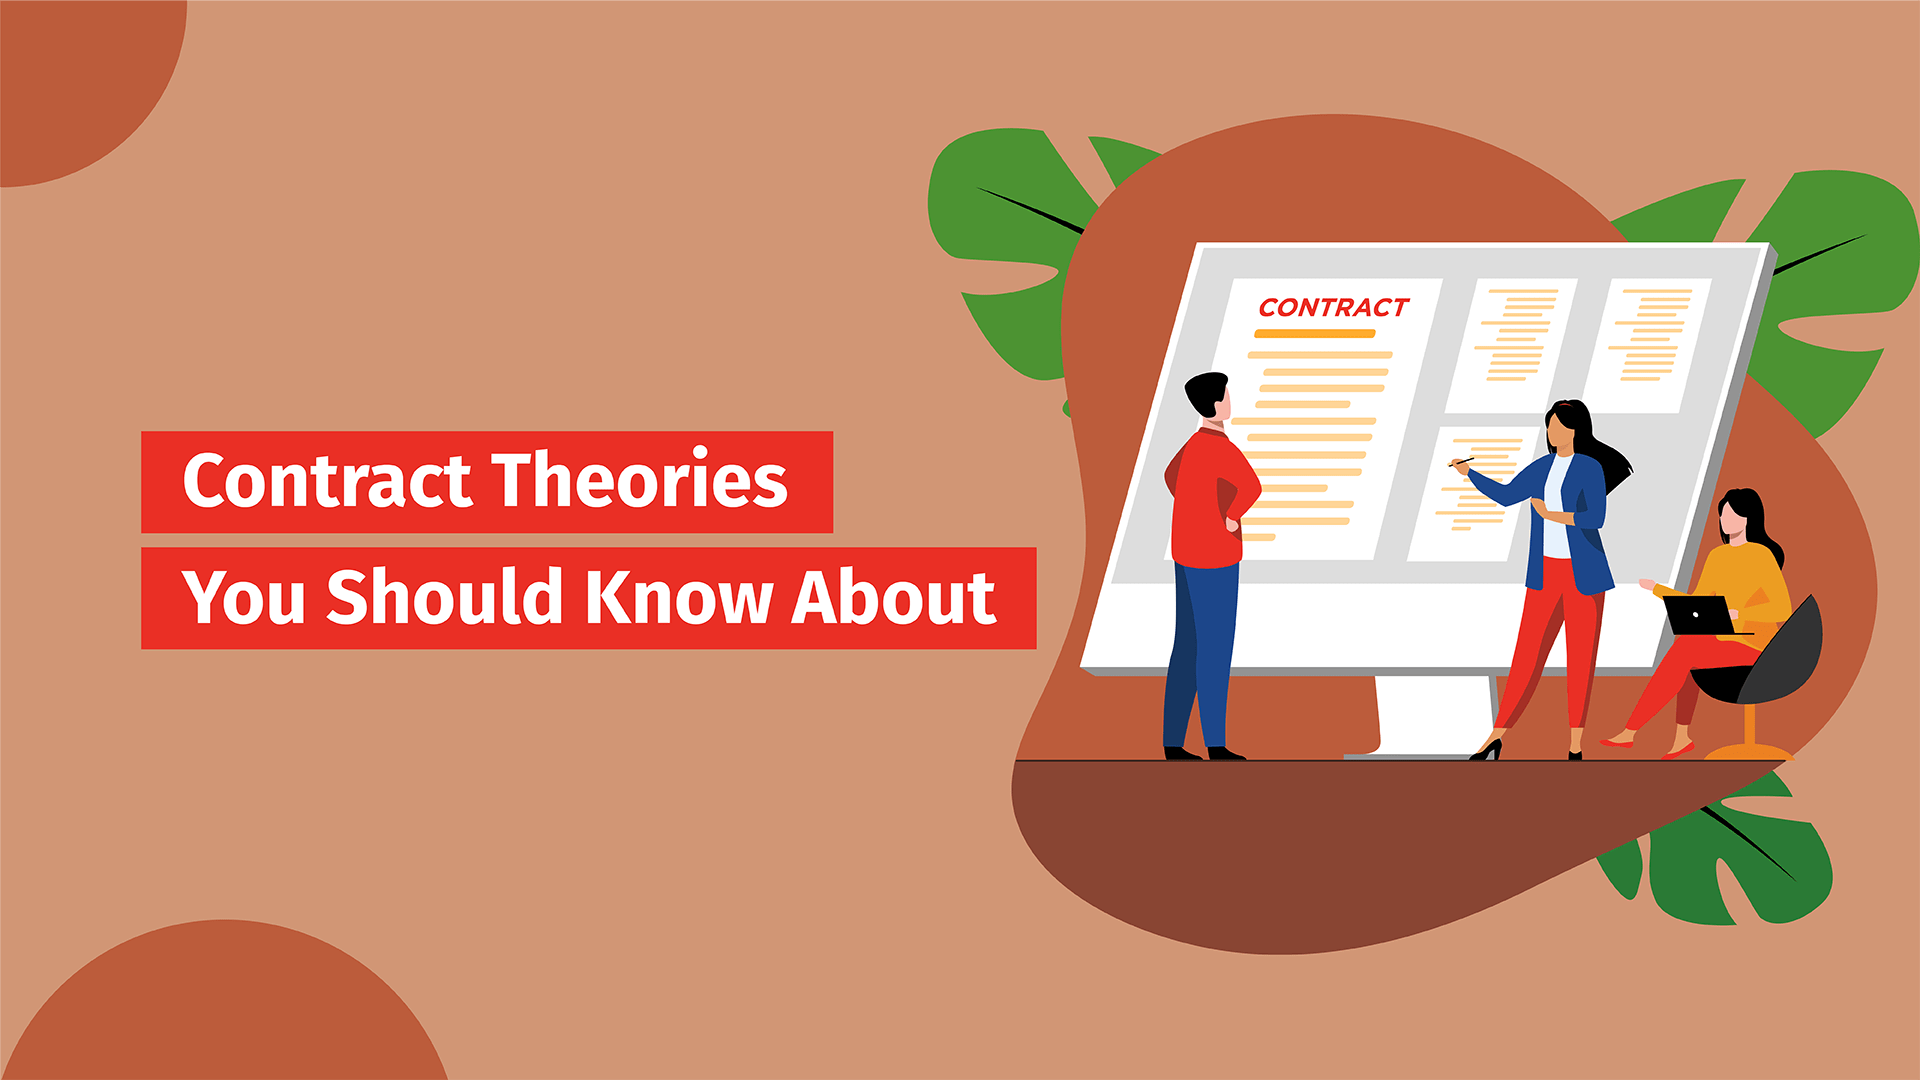 Contract Theories